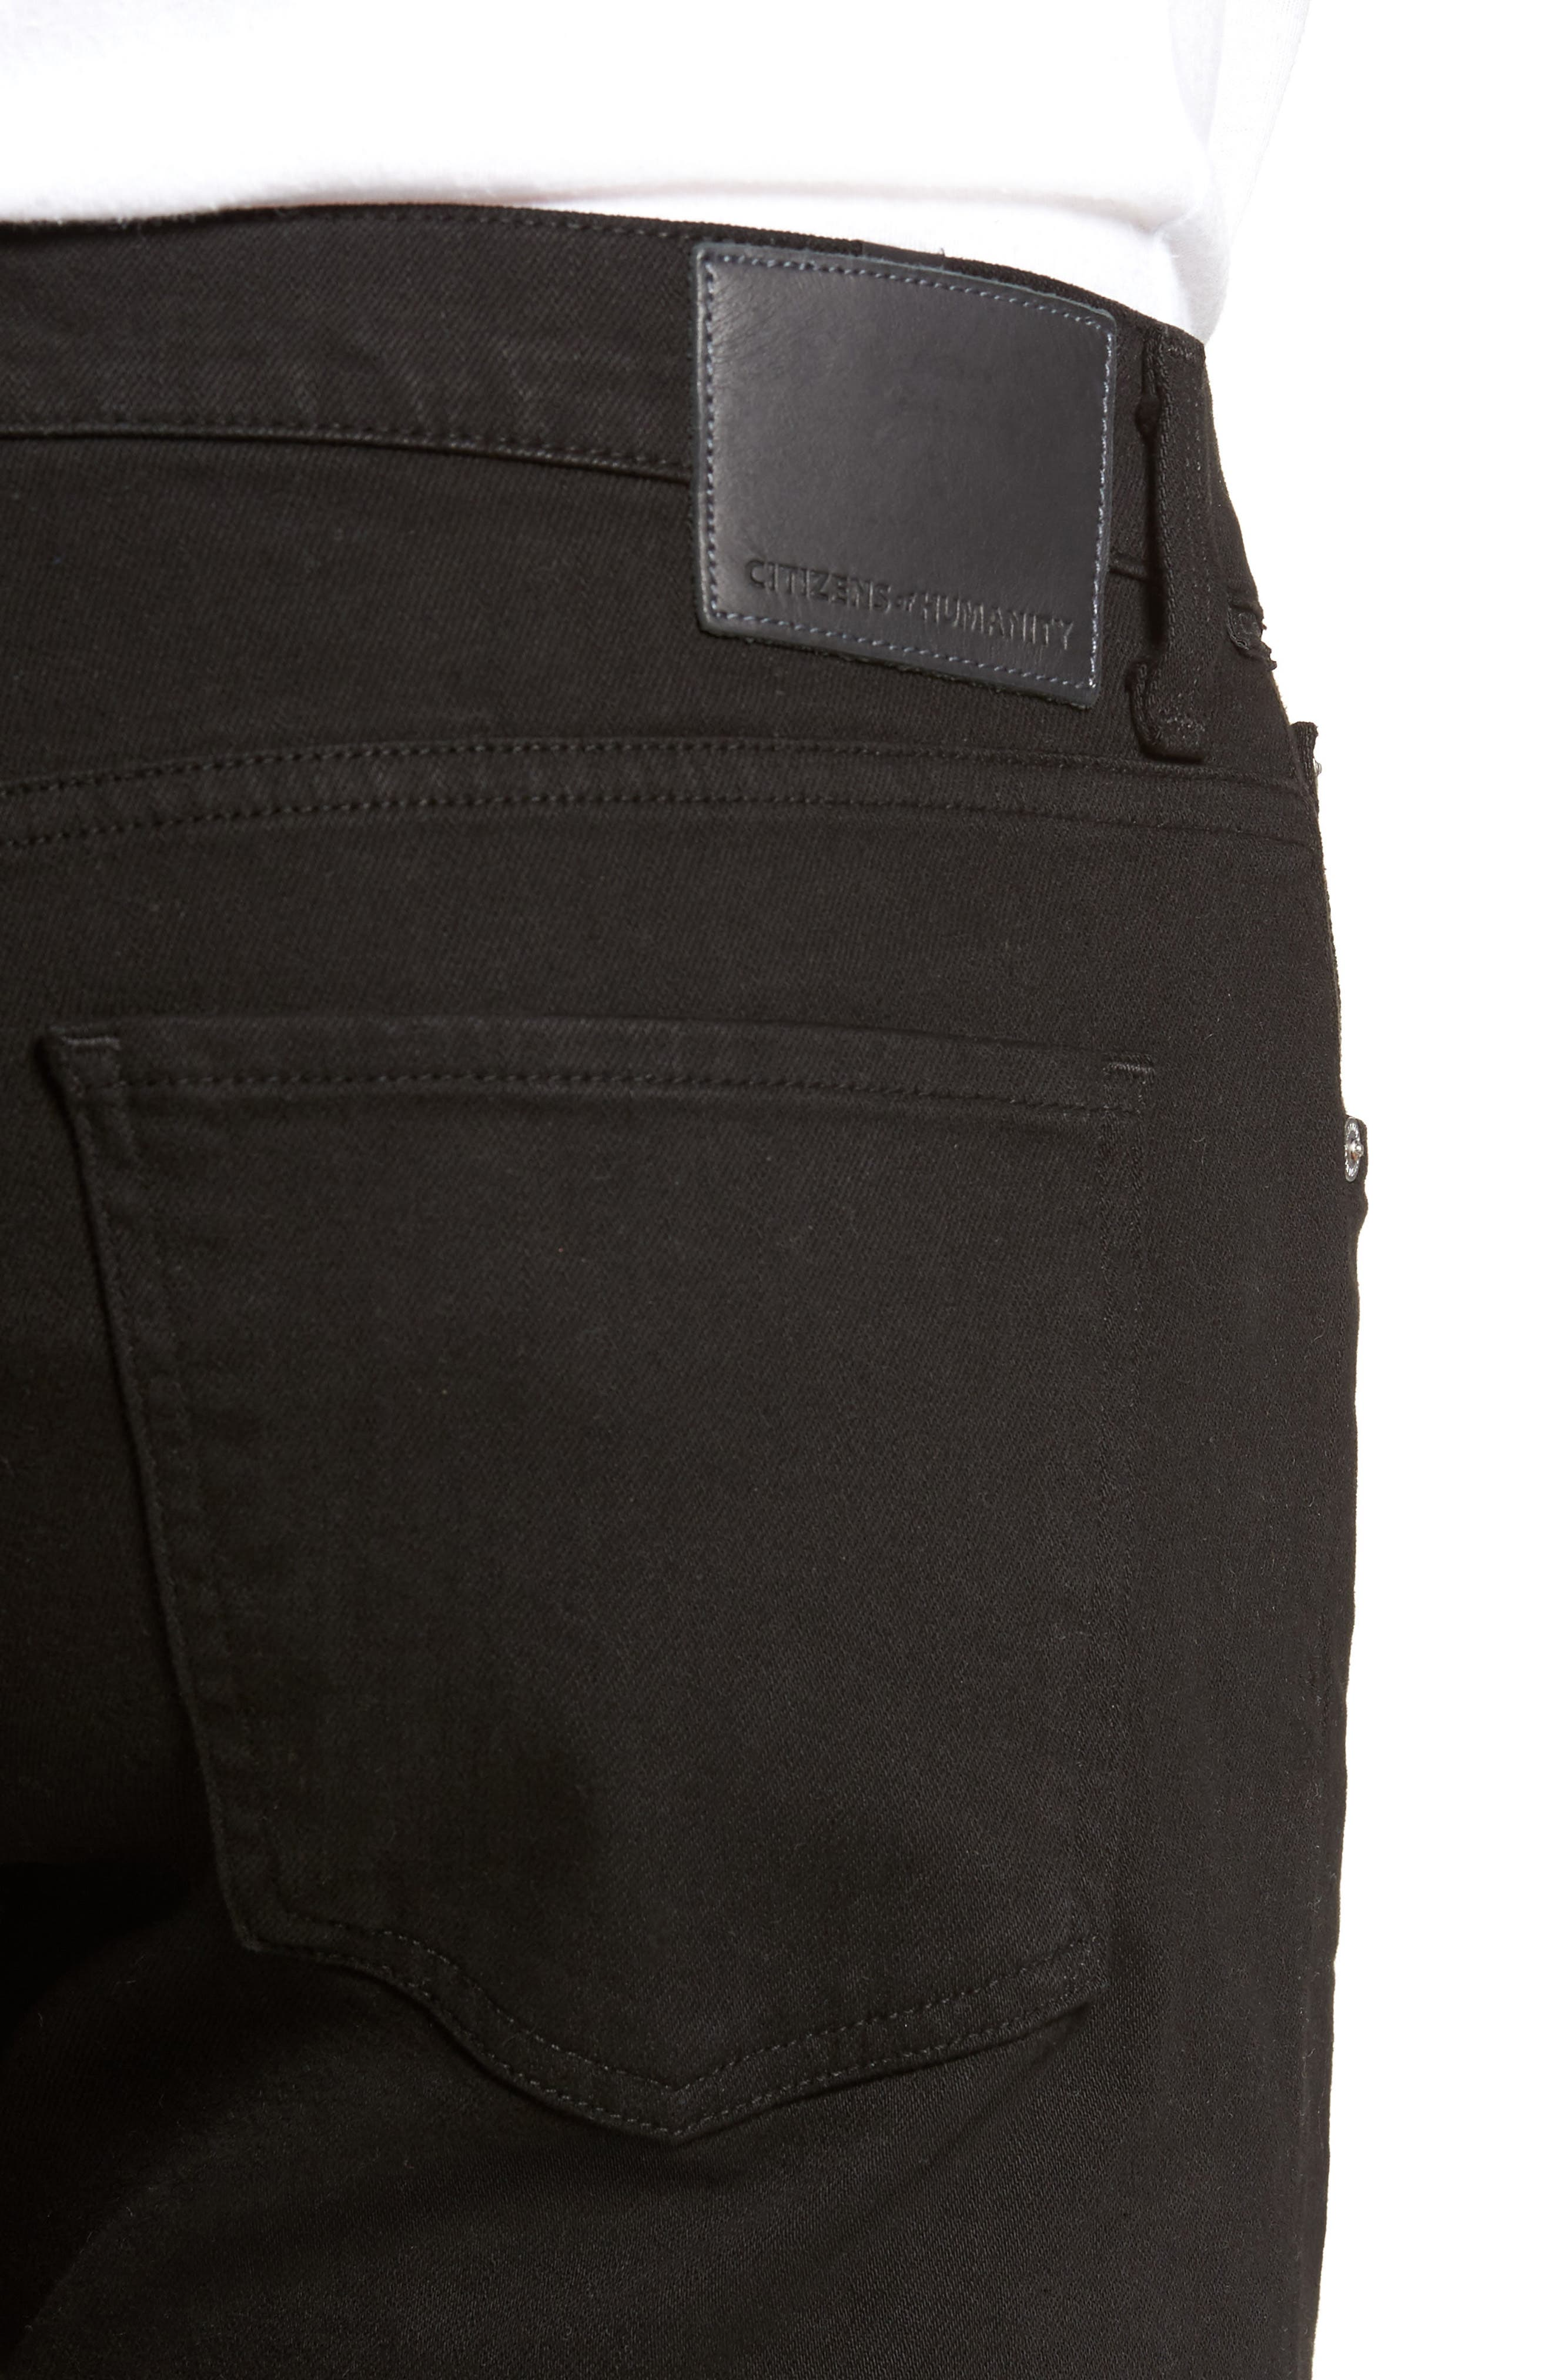 Sid Straight Fit Jeans,                             Alternate thumbnail 4, color,                             004